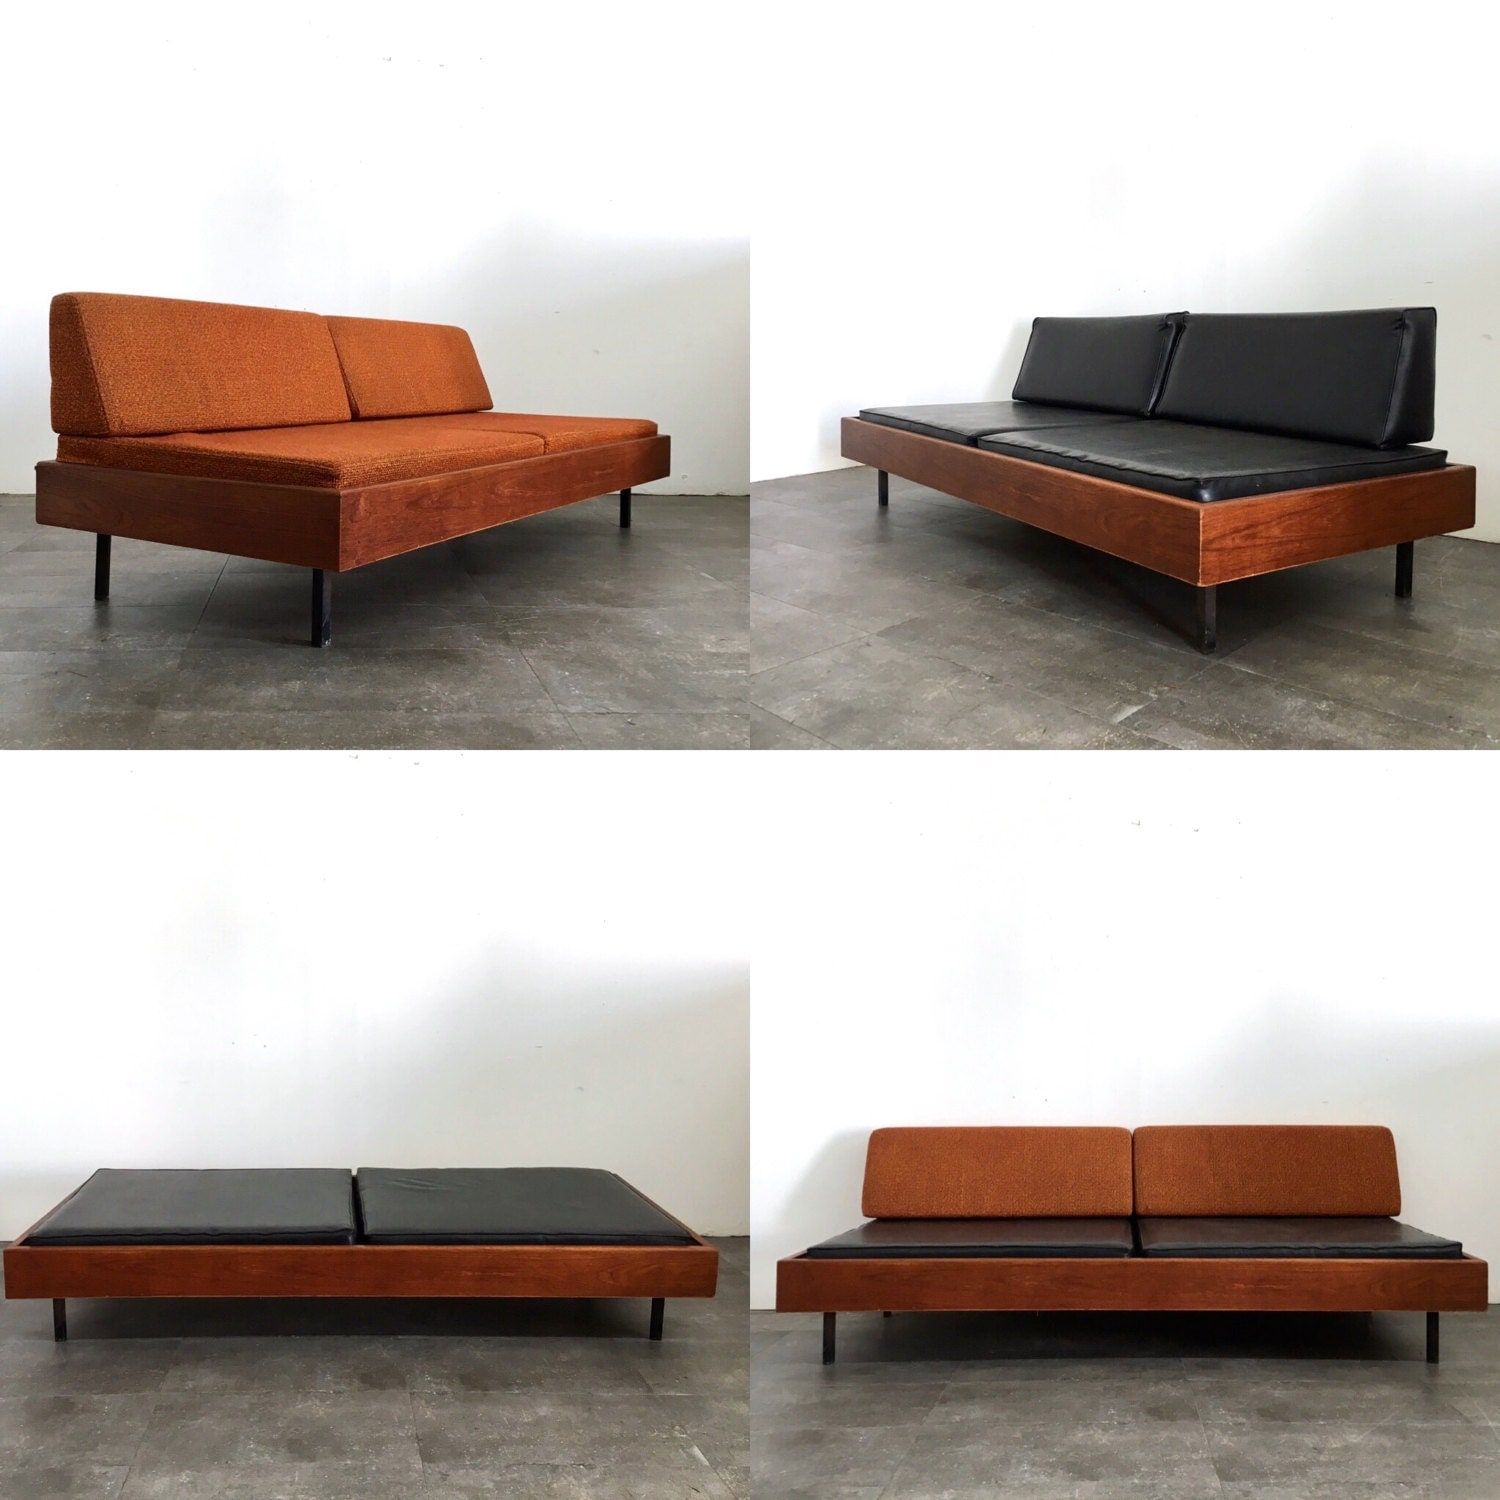 Reserved rare mid century modern walnut daybed bench sofa Daybed bench